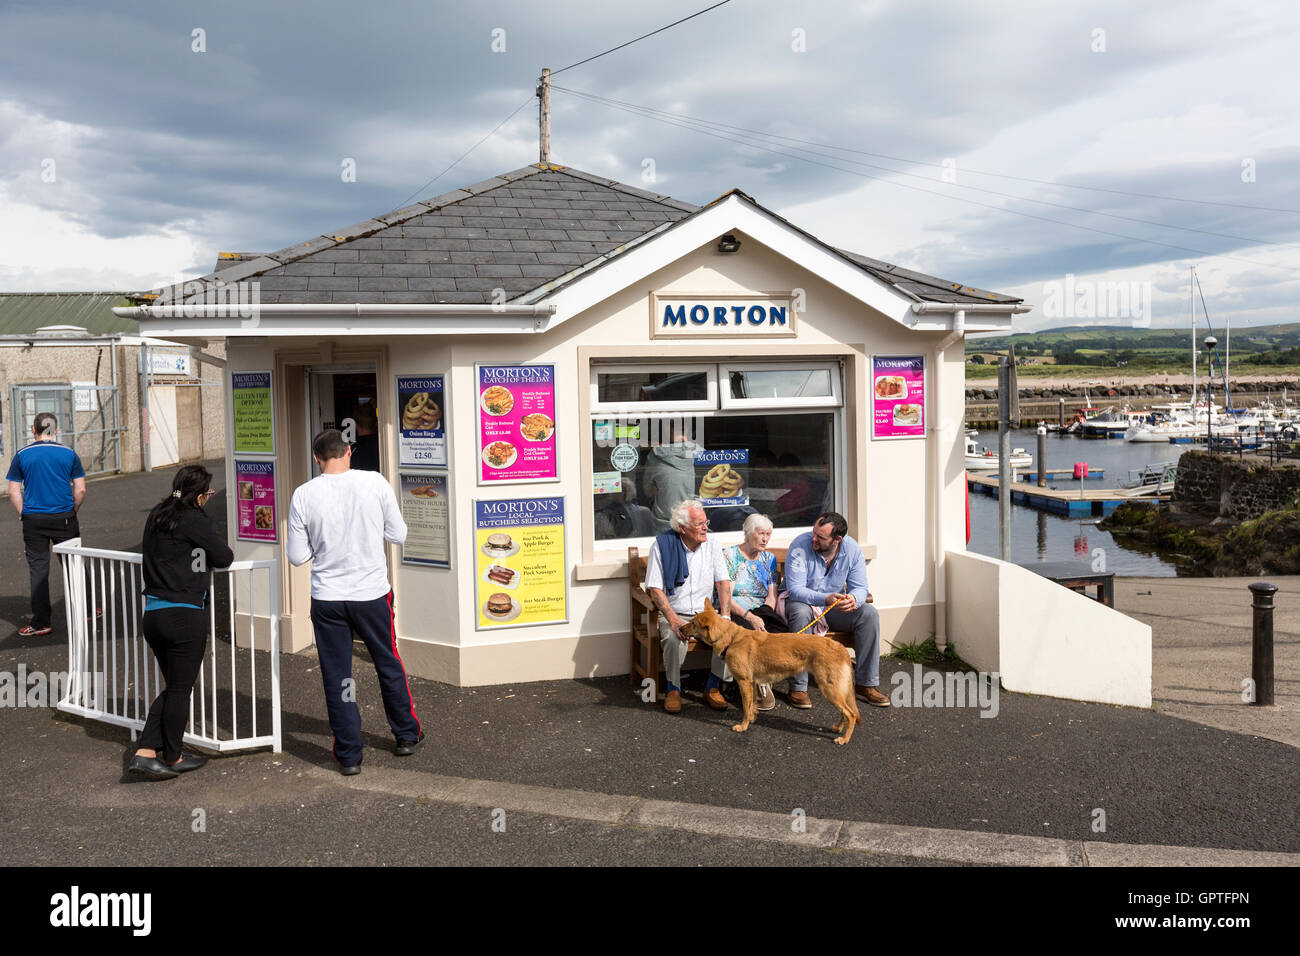 Morton famous fish and chips in Ballycastle, County Antrim, Northern Ireland, United Kingdom Stock Photo